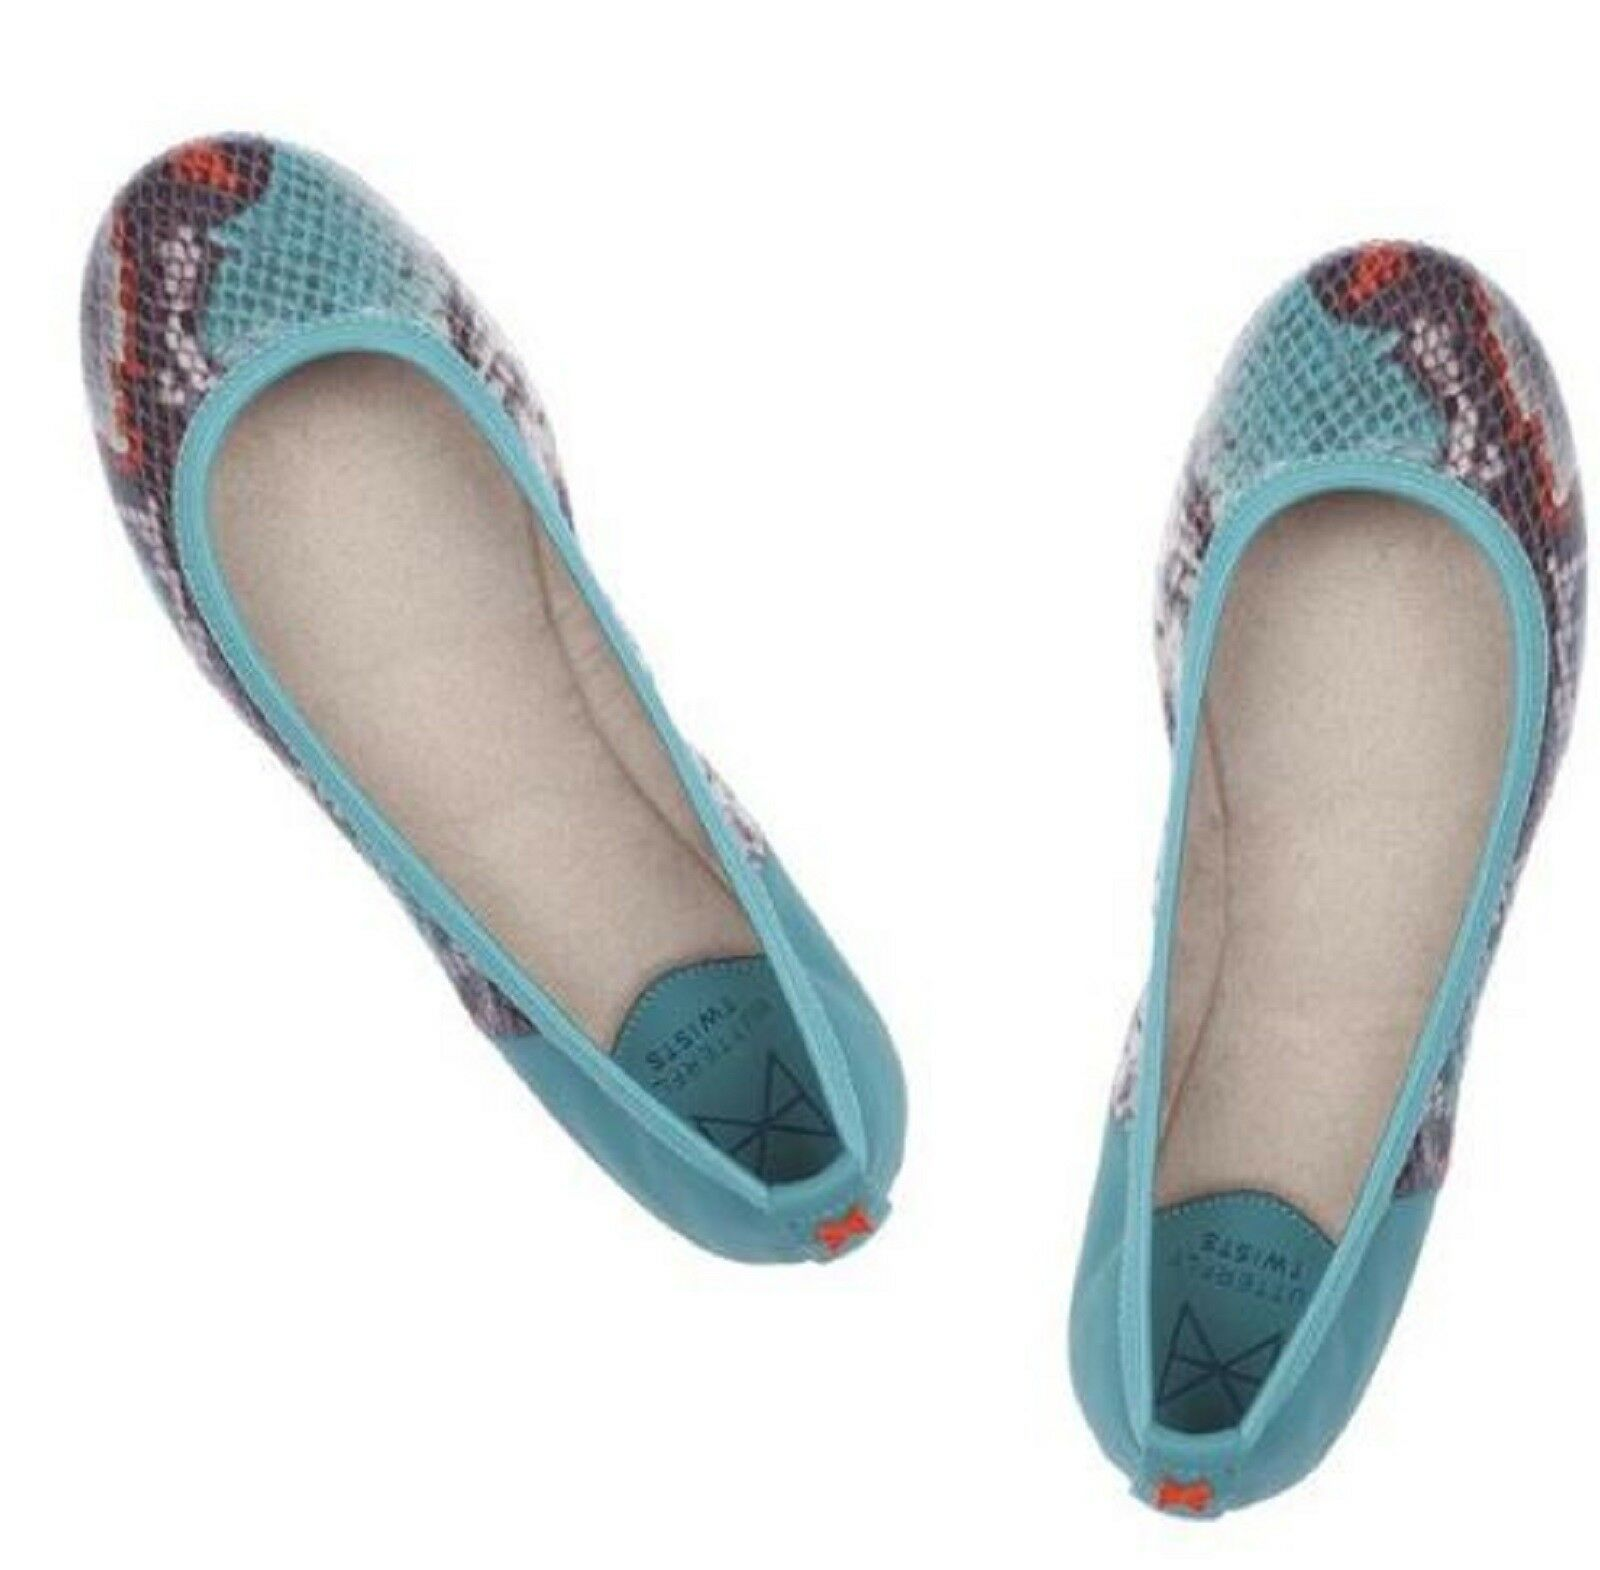 Butterfly Twists VIVIENNE Fold Up Ballet Flats TURQUOISE SNAKE 11 M (42) NIB